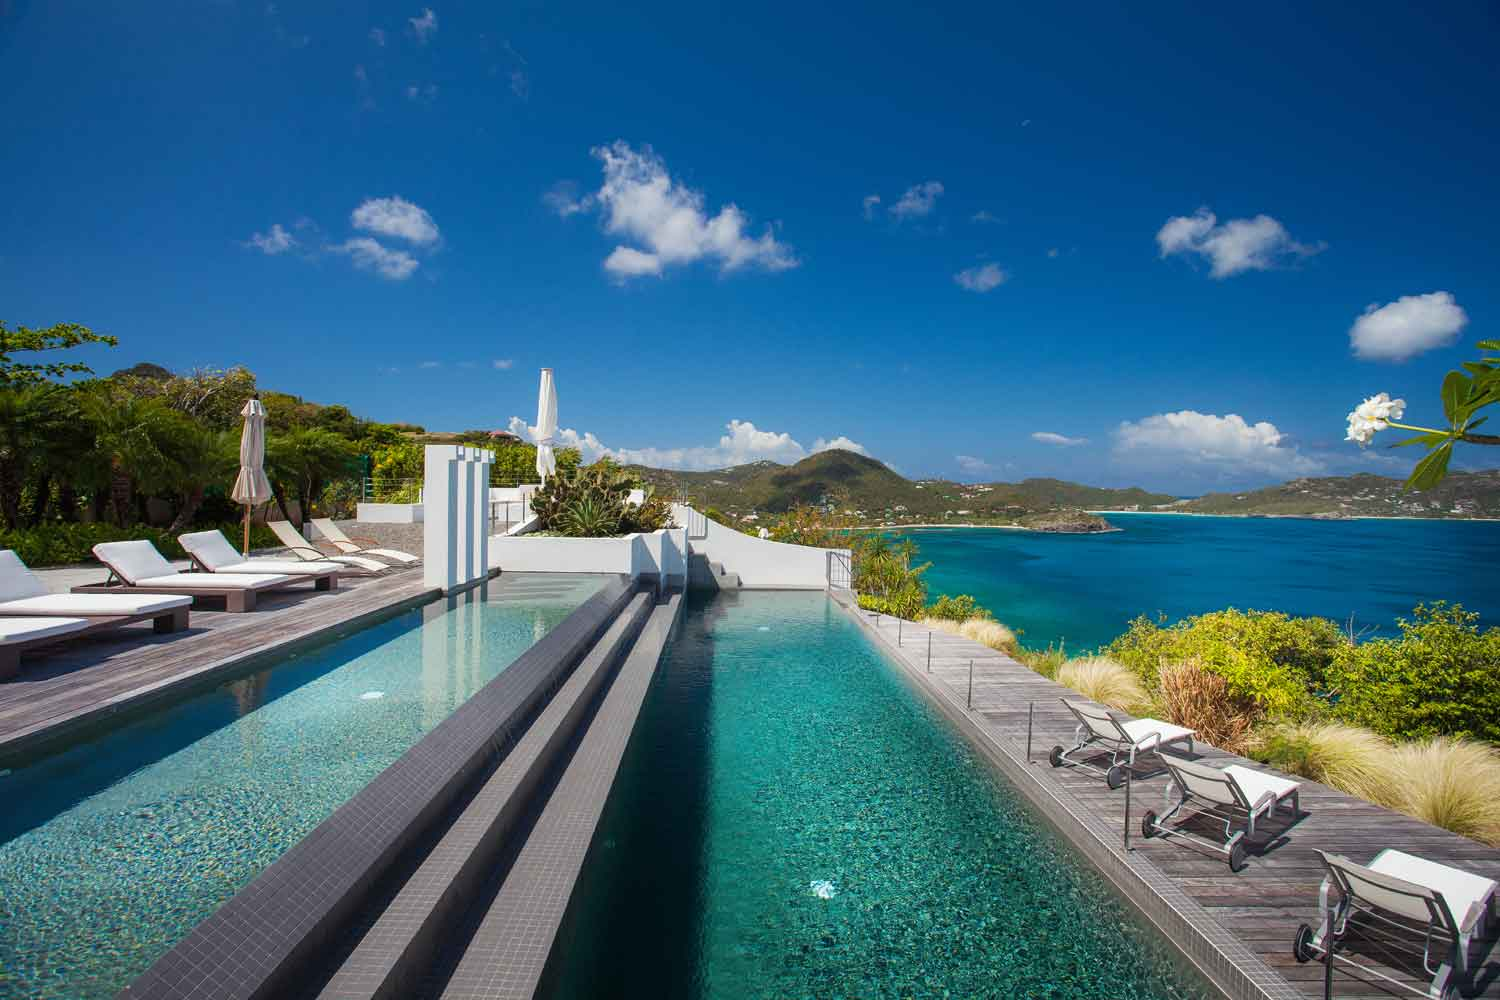 <b>Pointe Milou, St. Barthelemy</b><br/><i>3 Bedrooms, 2,842 sq. ft.</i><br/>Contemporary villa overlooking the sea